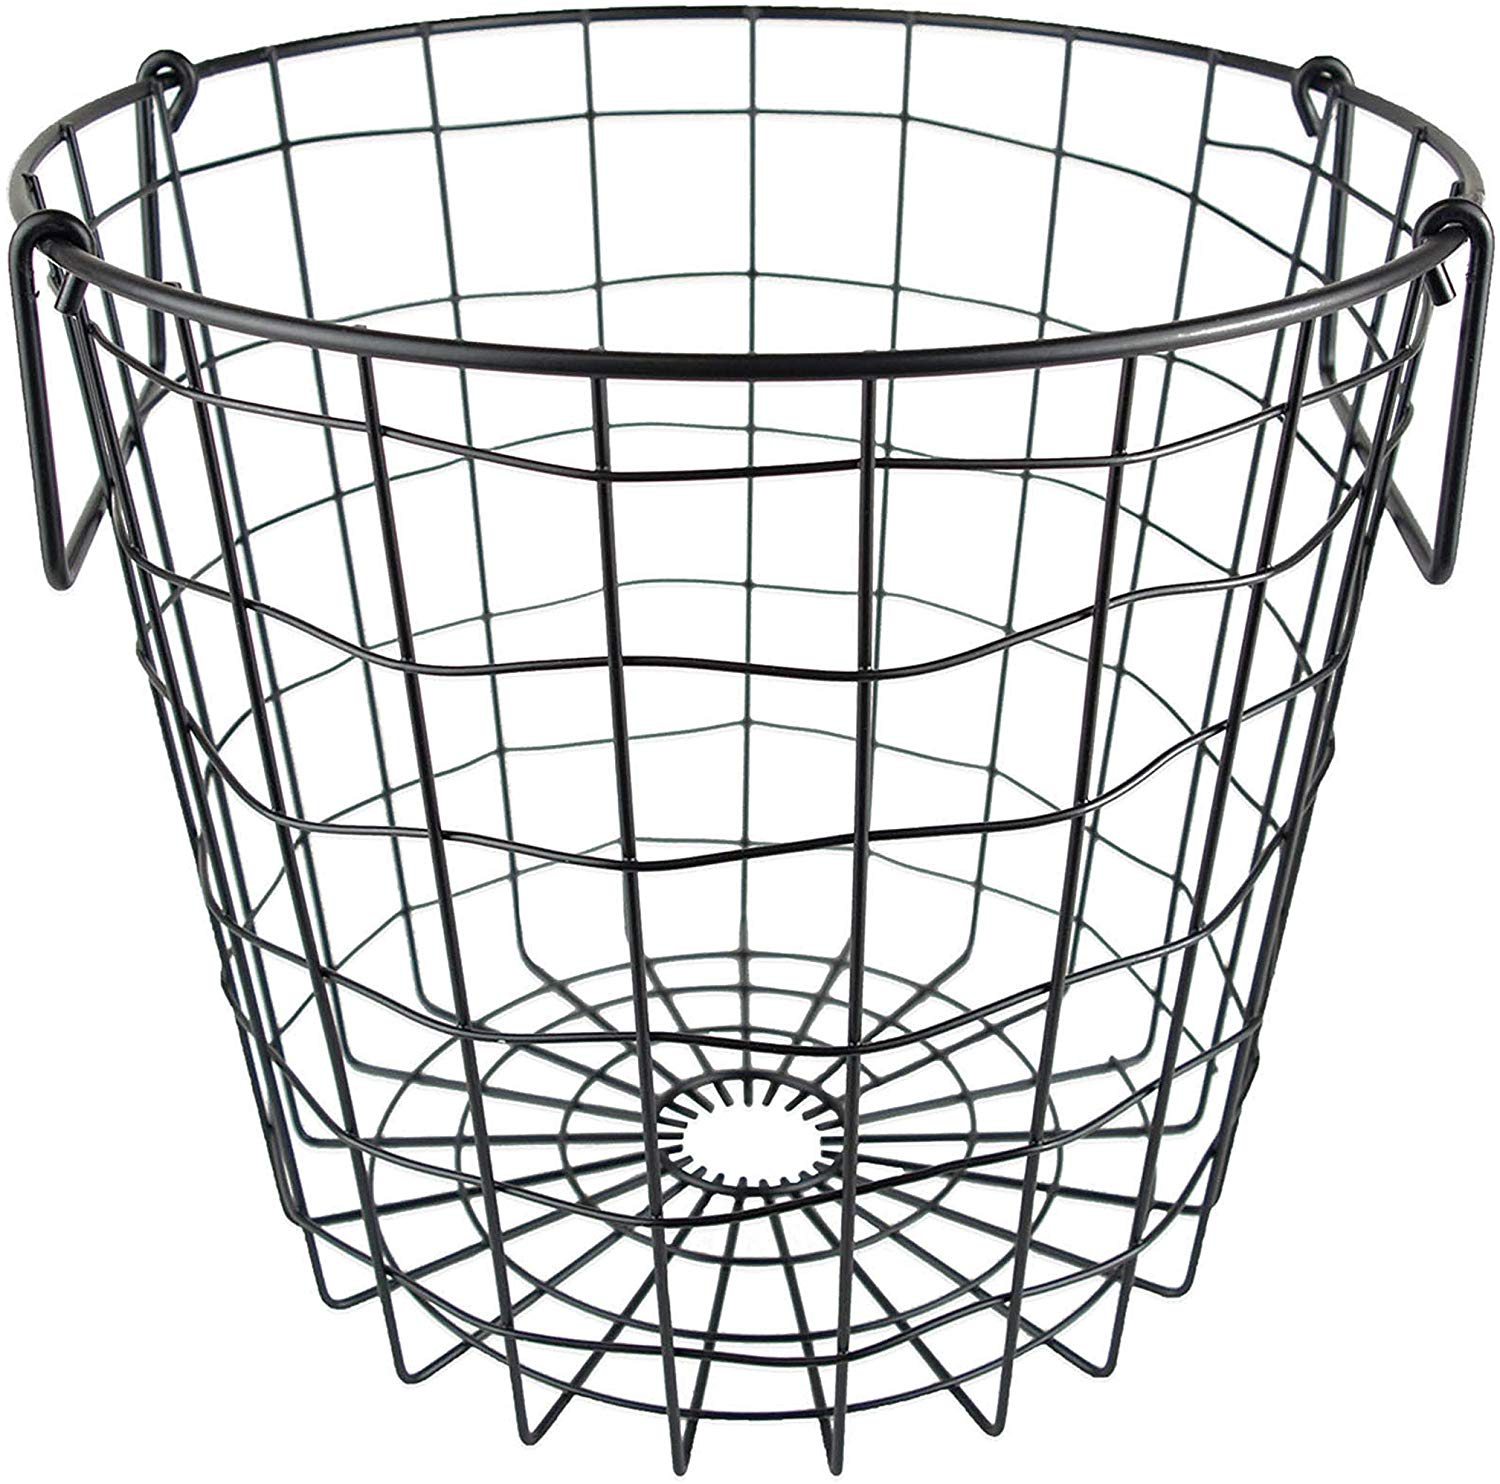 Spectrum Vintage Medium Cabinet & Wall Mount Wire Basket, Grey